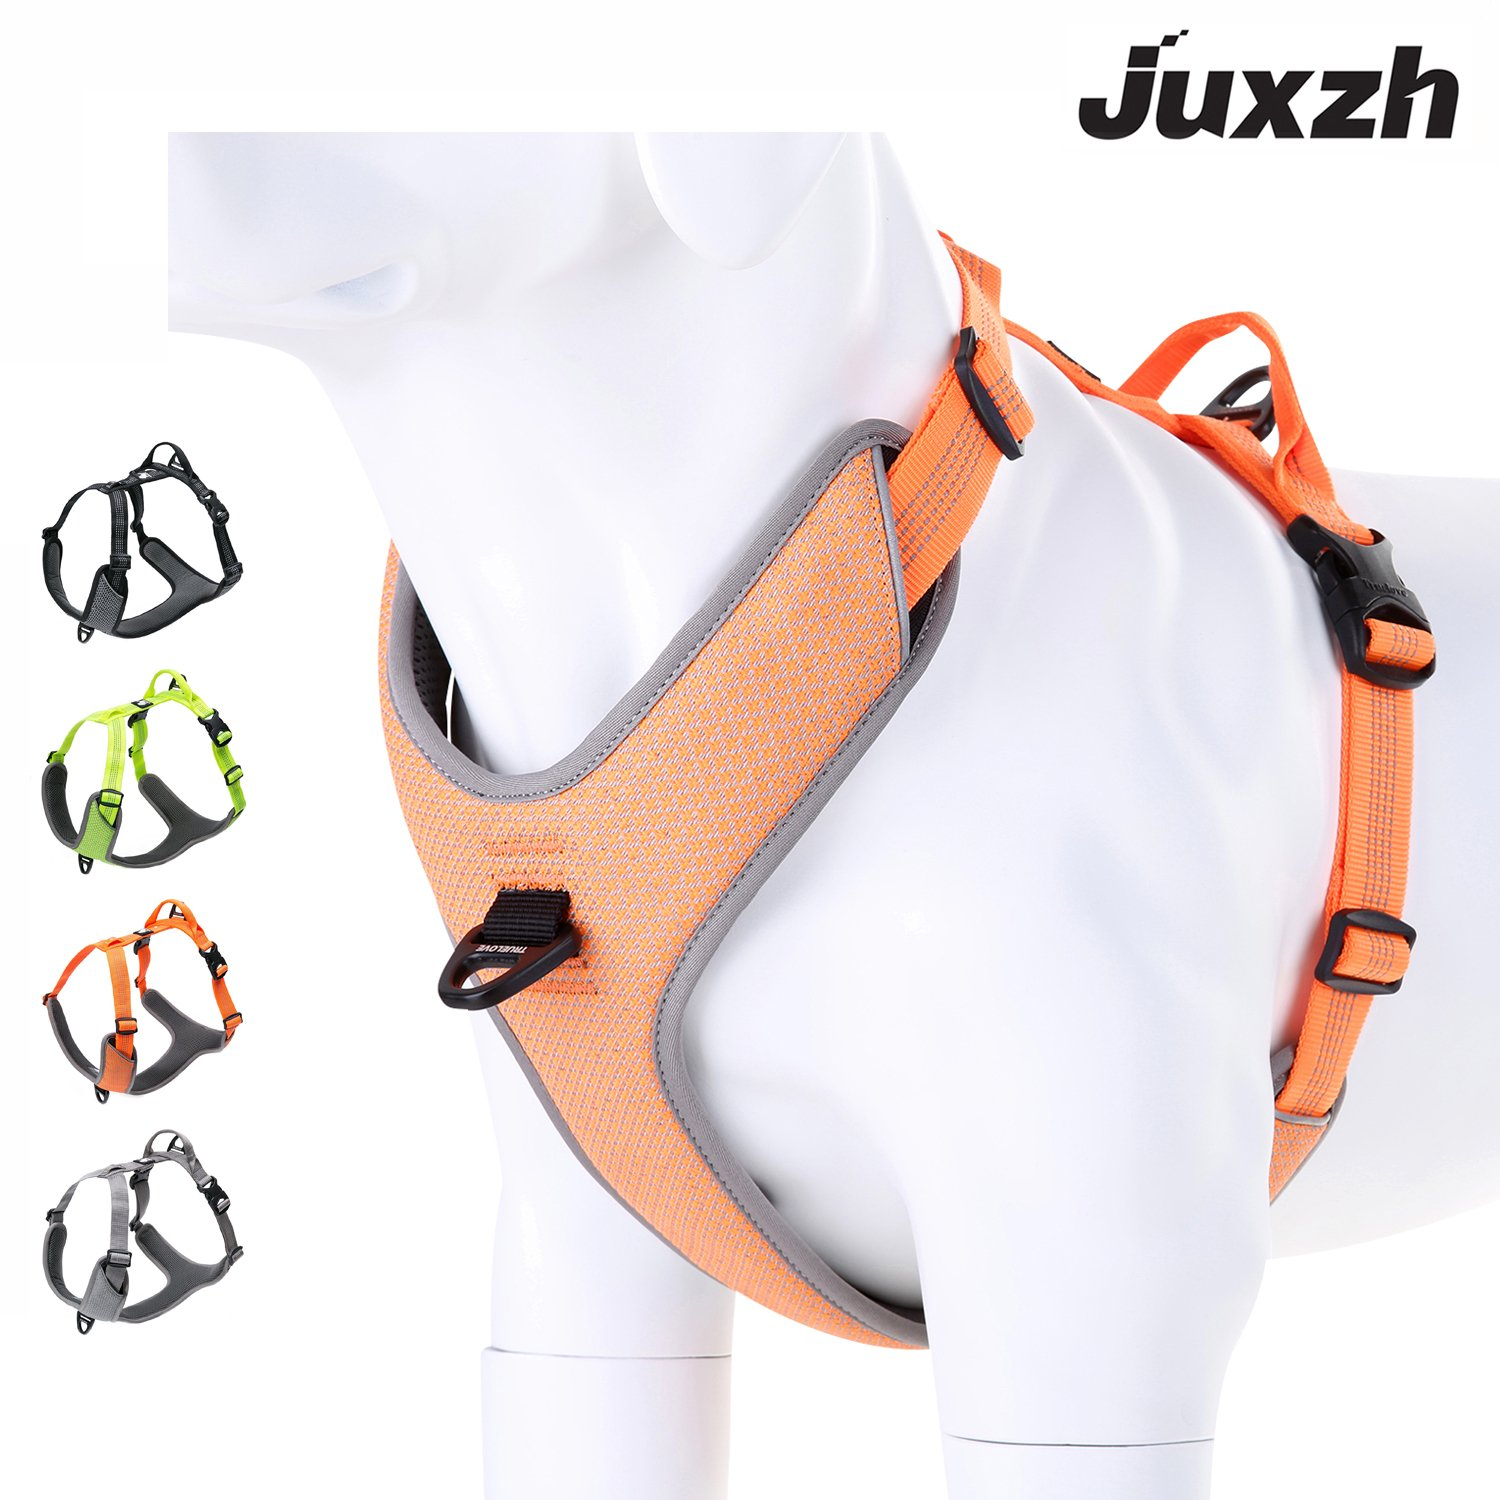 juxzh Best New 2018 Dog Harness Reflective Lightweight No-Pull Adjustable Nylon Pet Training Harness with Soft Padded Pet Vest For Outdoor Small Medium Large Dog